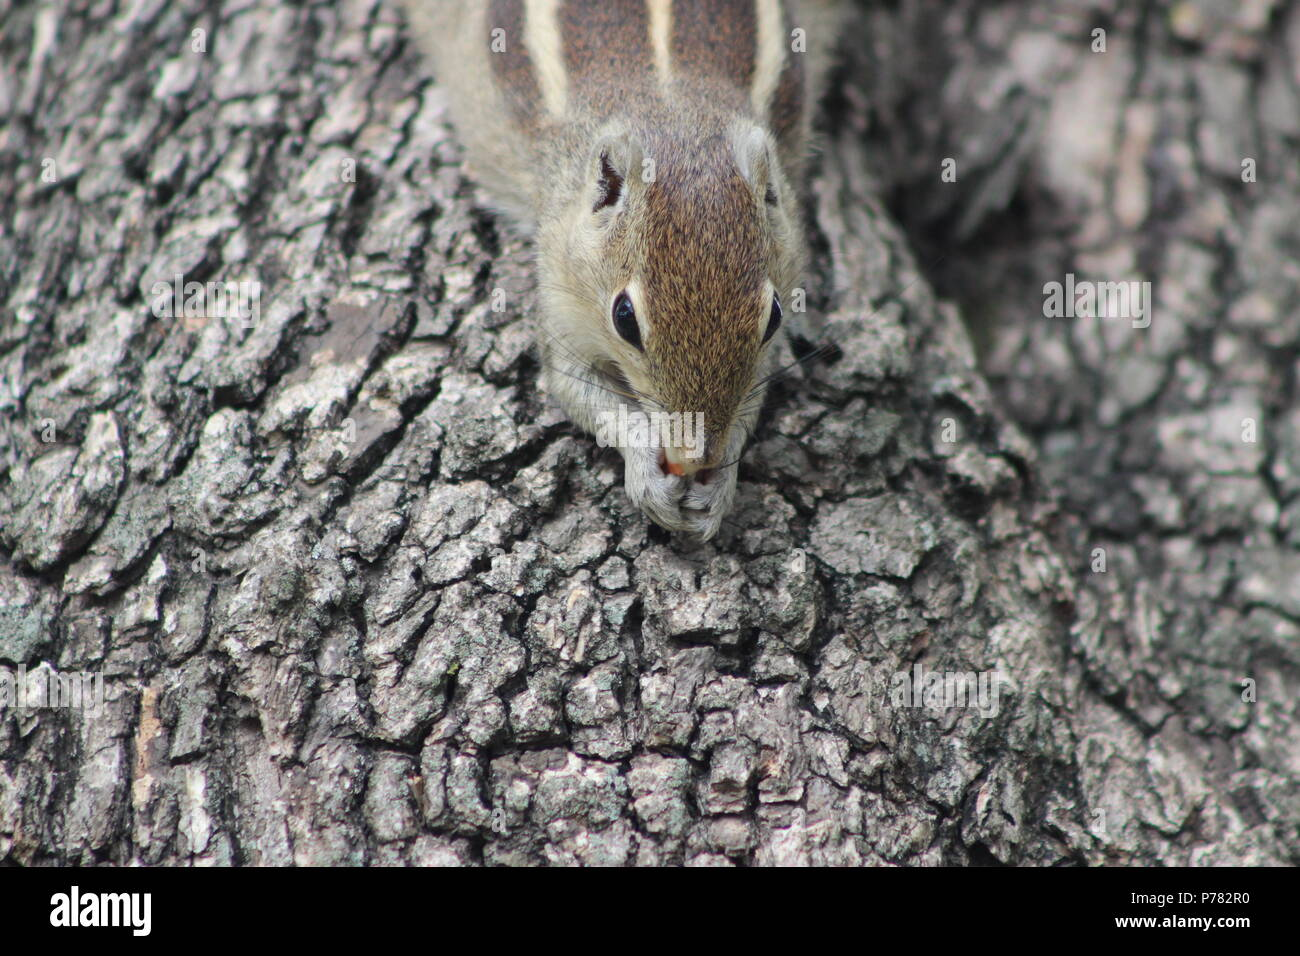 Squirrel eating a nuts - Stock Image